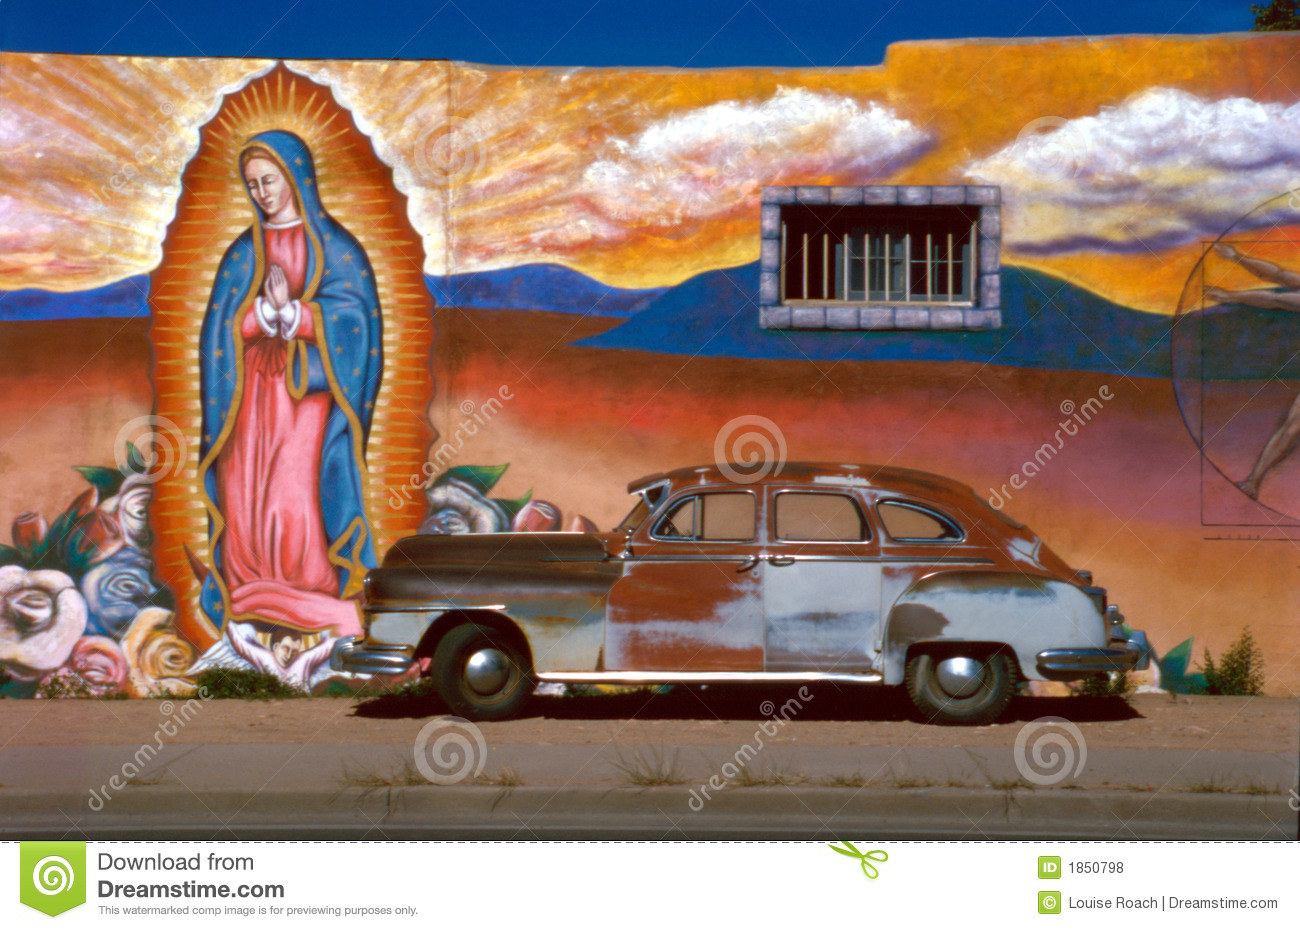 Car with Guadalupe